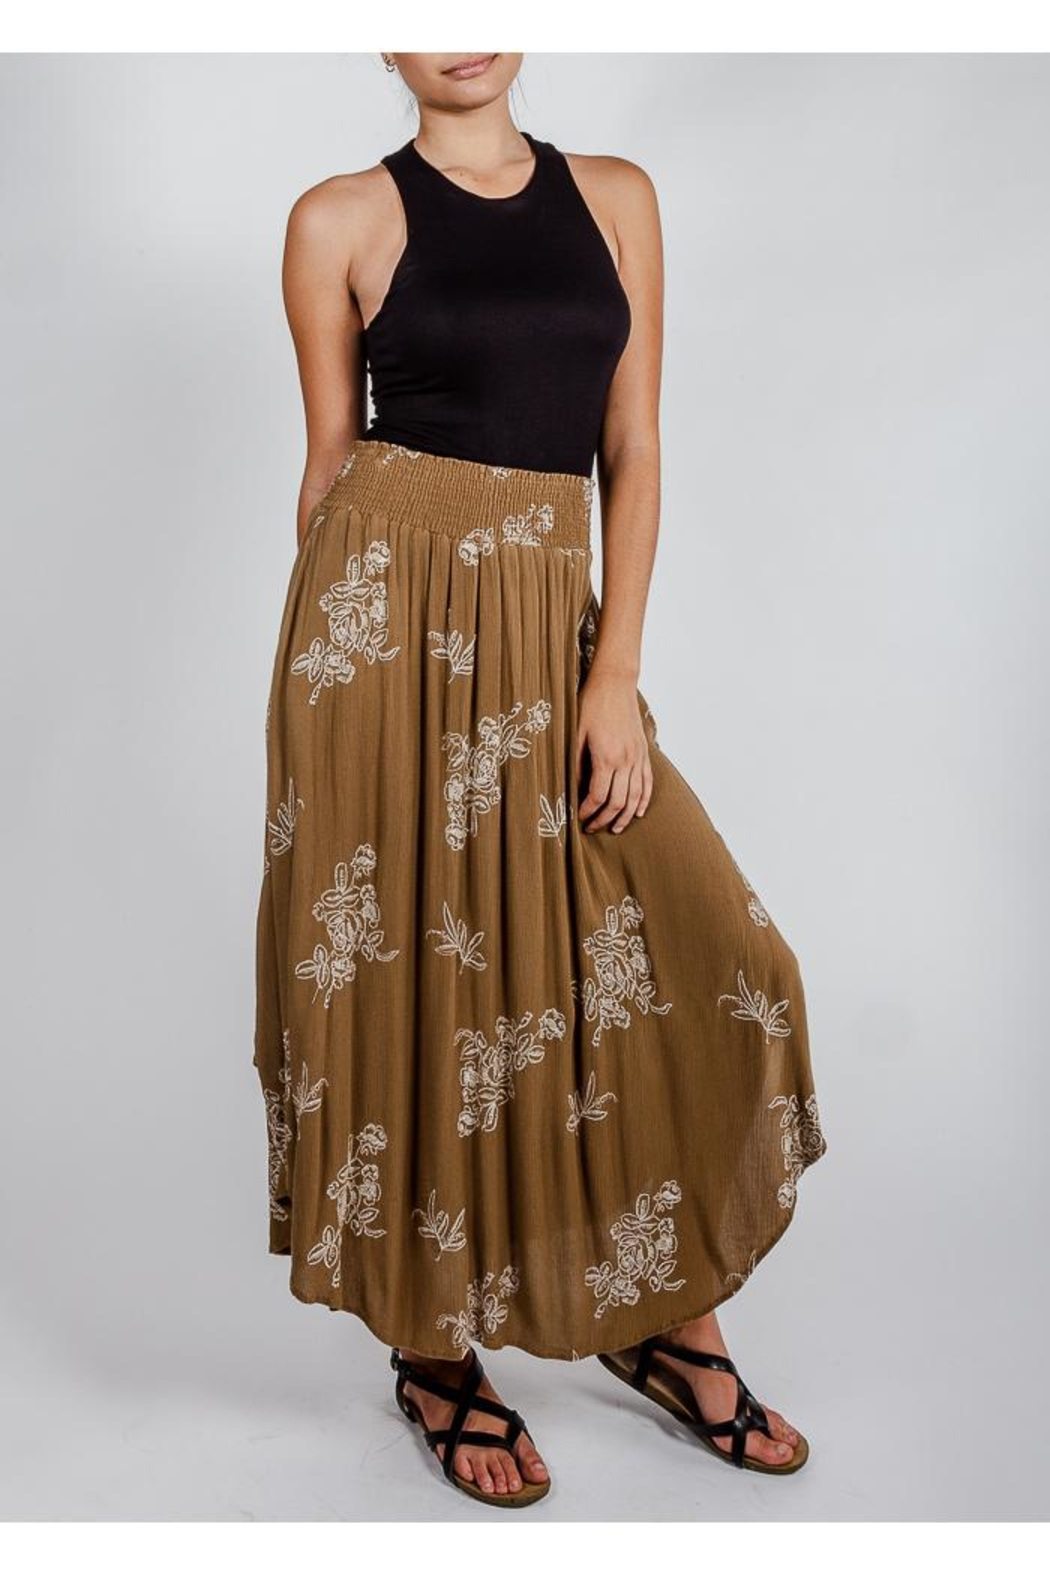 Final Touch Olive Floral Midi-Skirt - Back Cropped Image